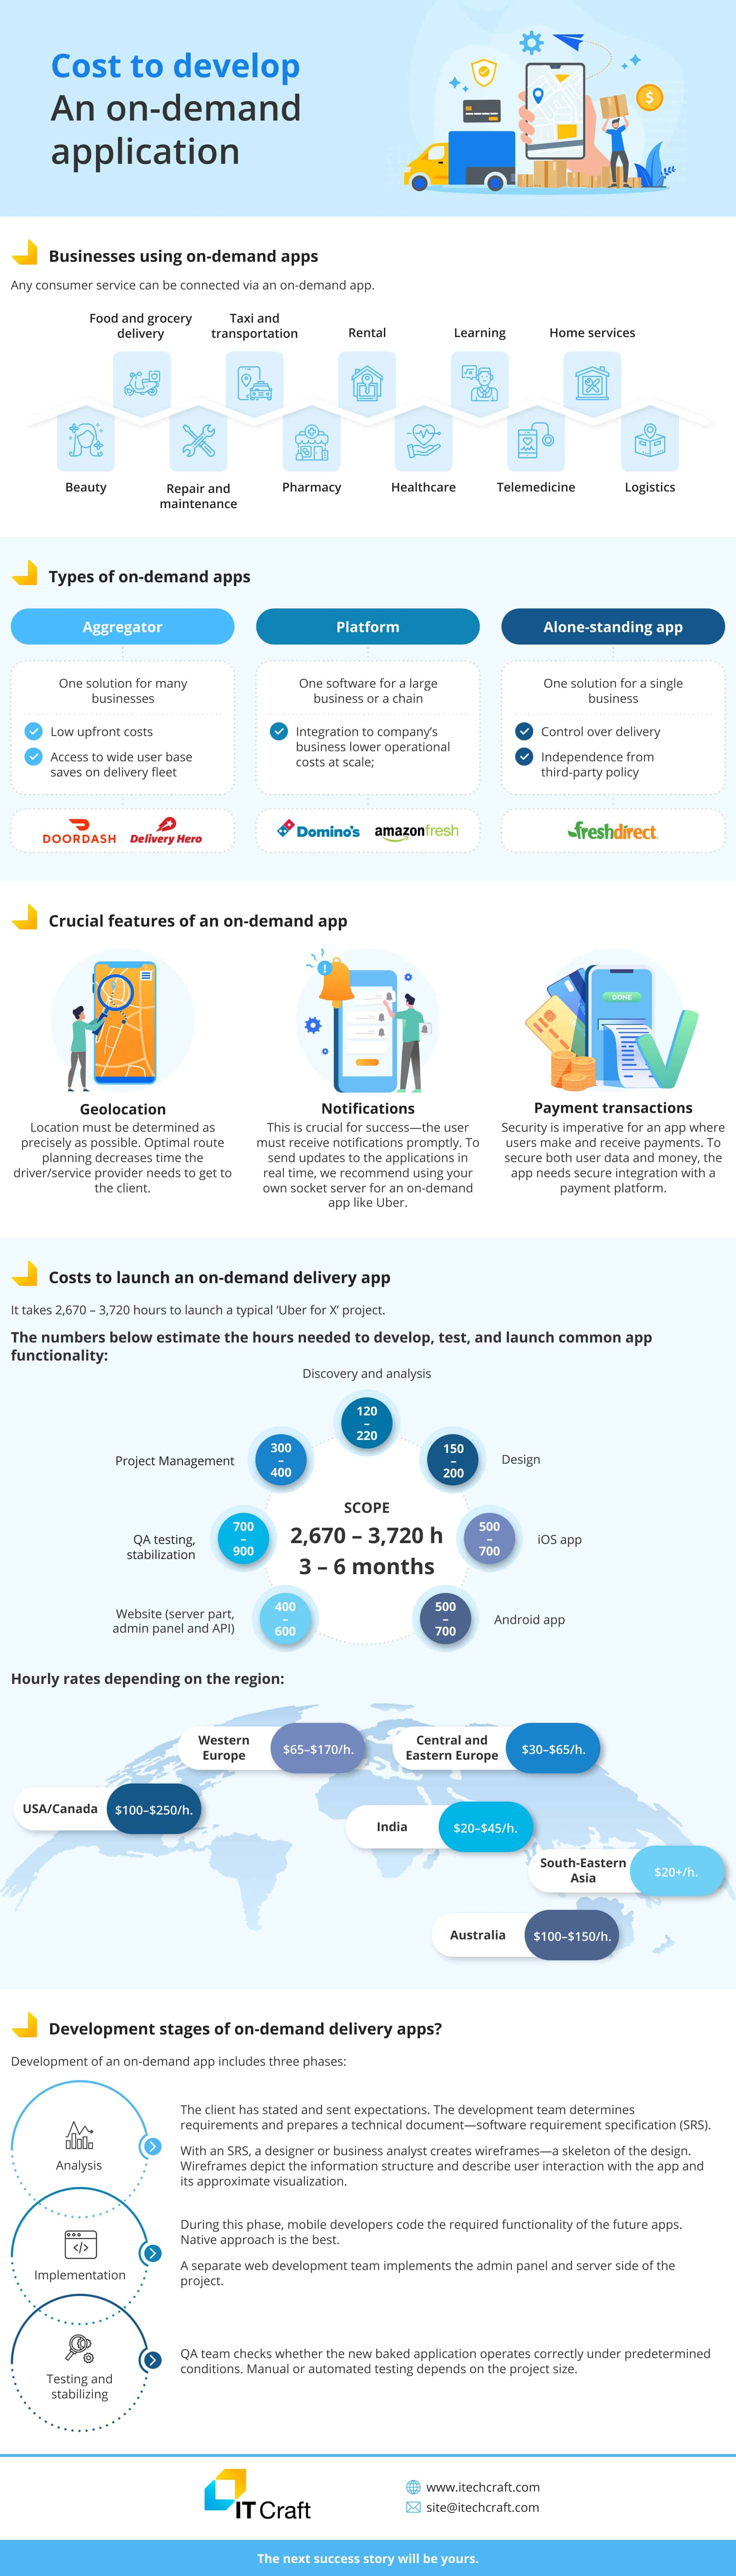 Cost to develop An on-demand application